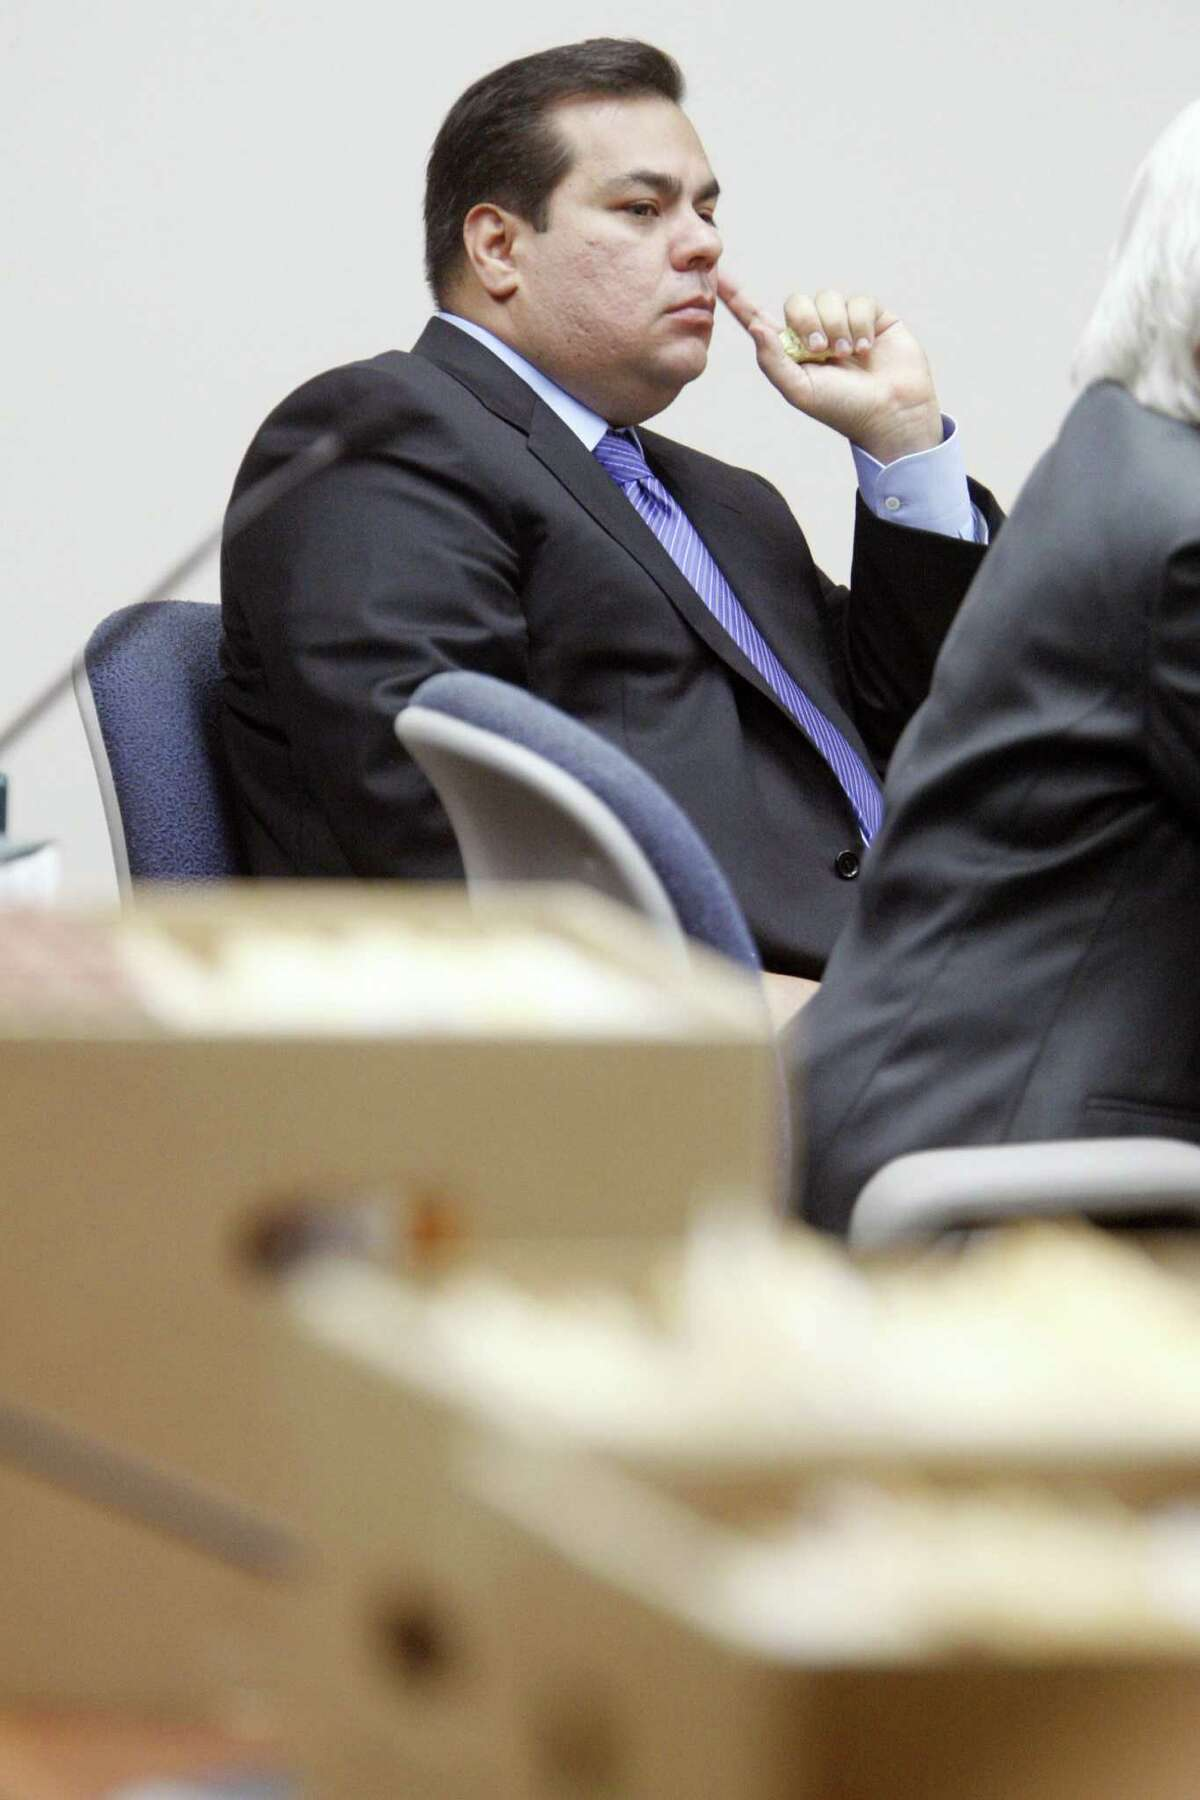 Defendant Mauricio Celis listens to testimony as boxes of the prosecution's documents line the tables Tuesday, Feb. 10, 2009, during the opening day of the first criminal trial against Celis at the Nueces County Courthouse in Corpus Christi. Celis is facing 23 counts of falsely holding himself out as a lawyer. (AP Photo/Corpus Christi Caller-Times,/Michael Zamora)